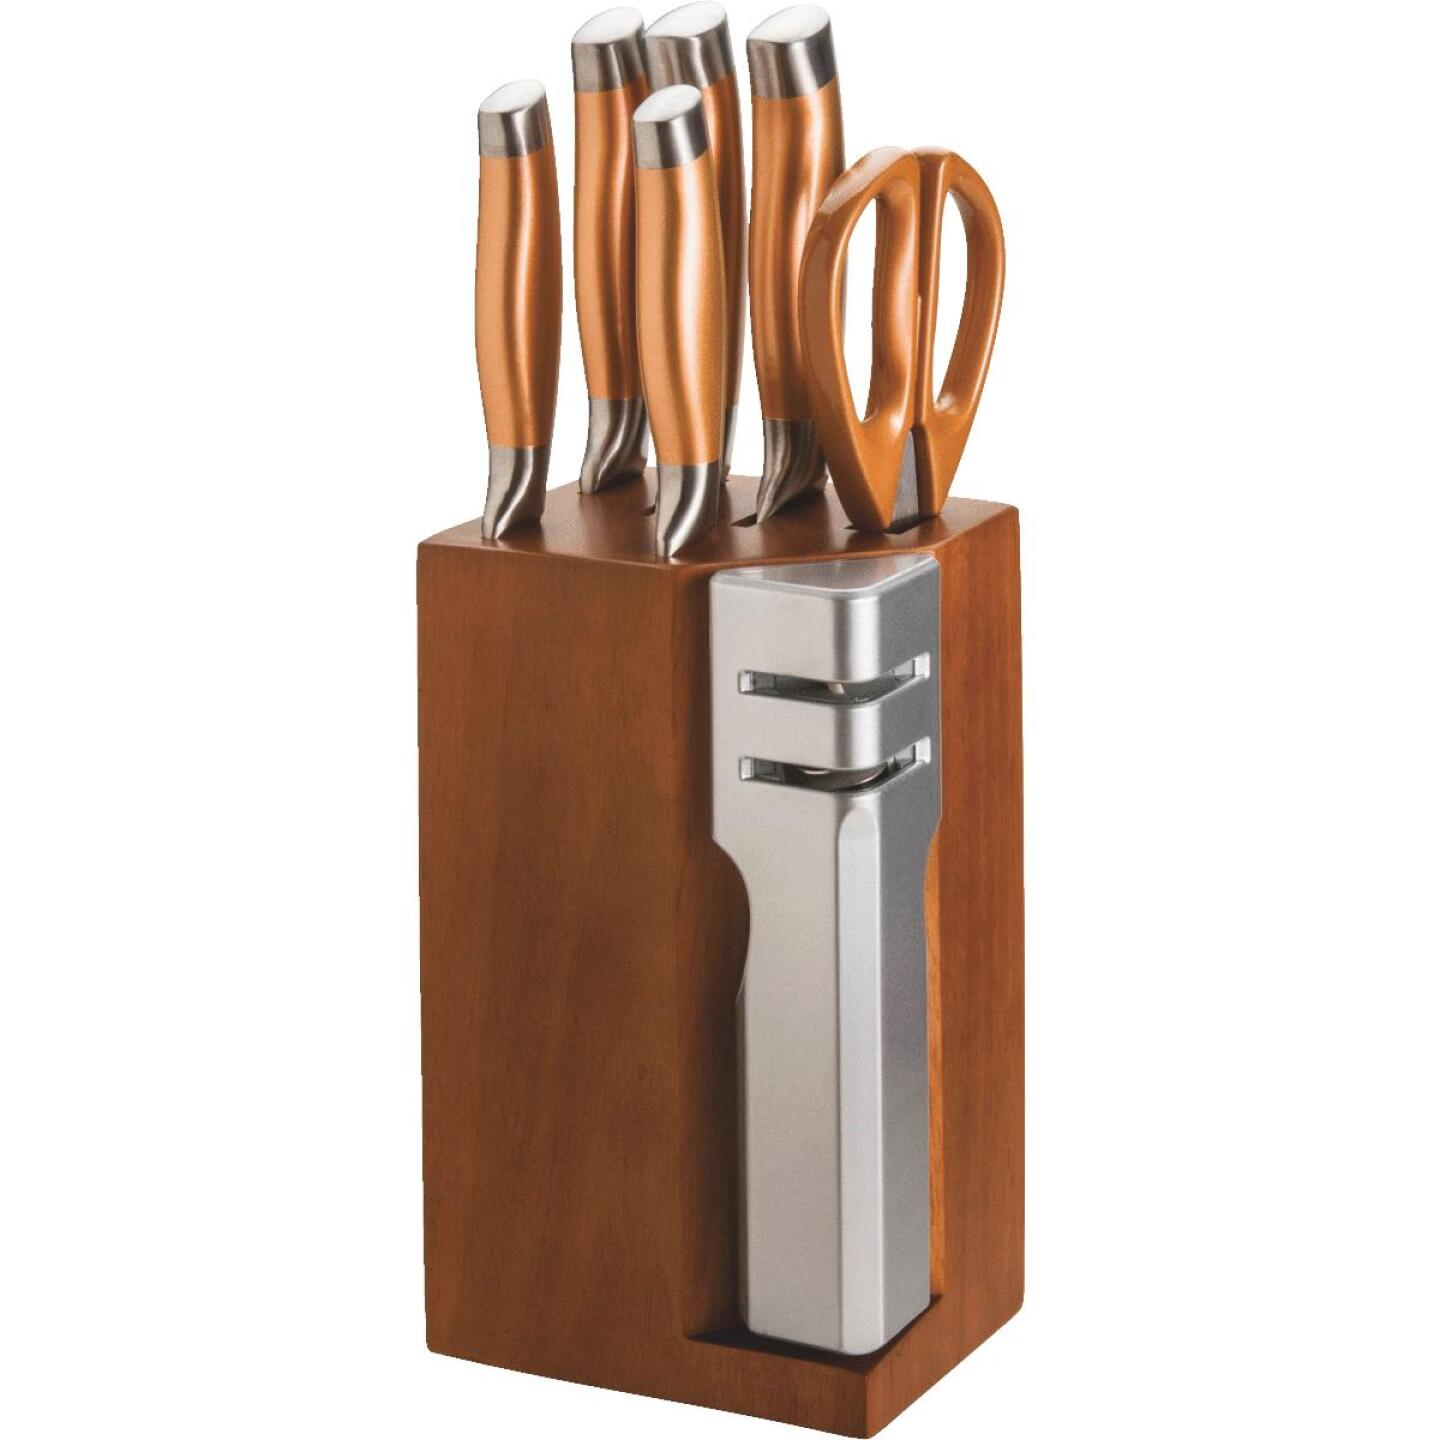 New England Cutlery Stainless Steel Blade Knife Set with Block (7-Piece) Image 1